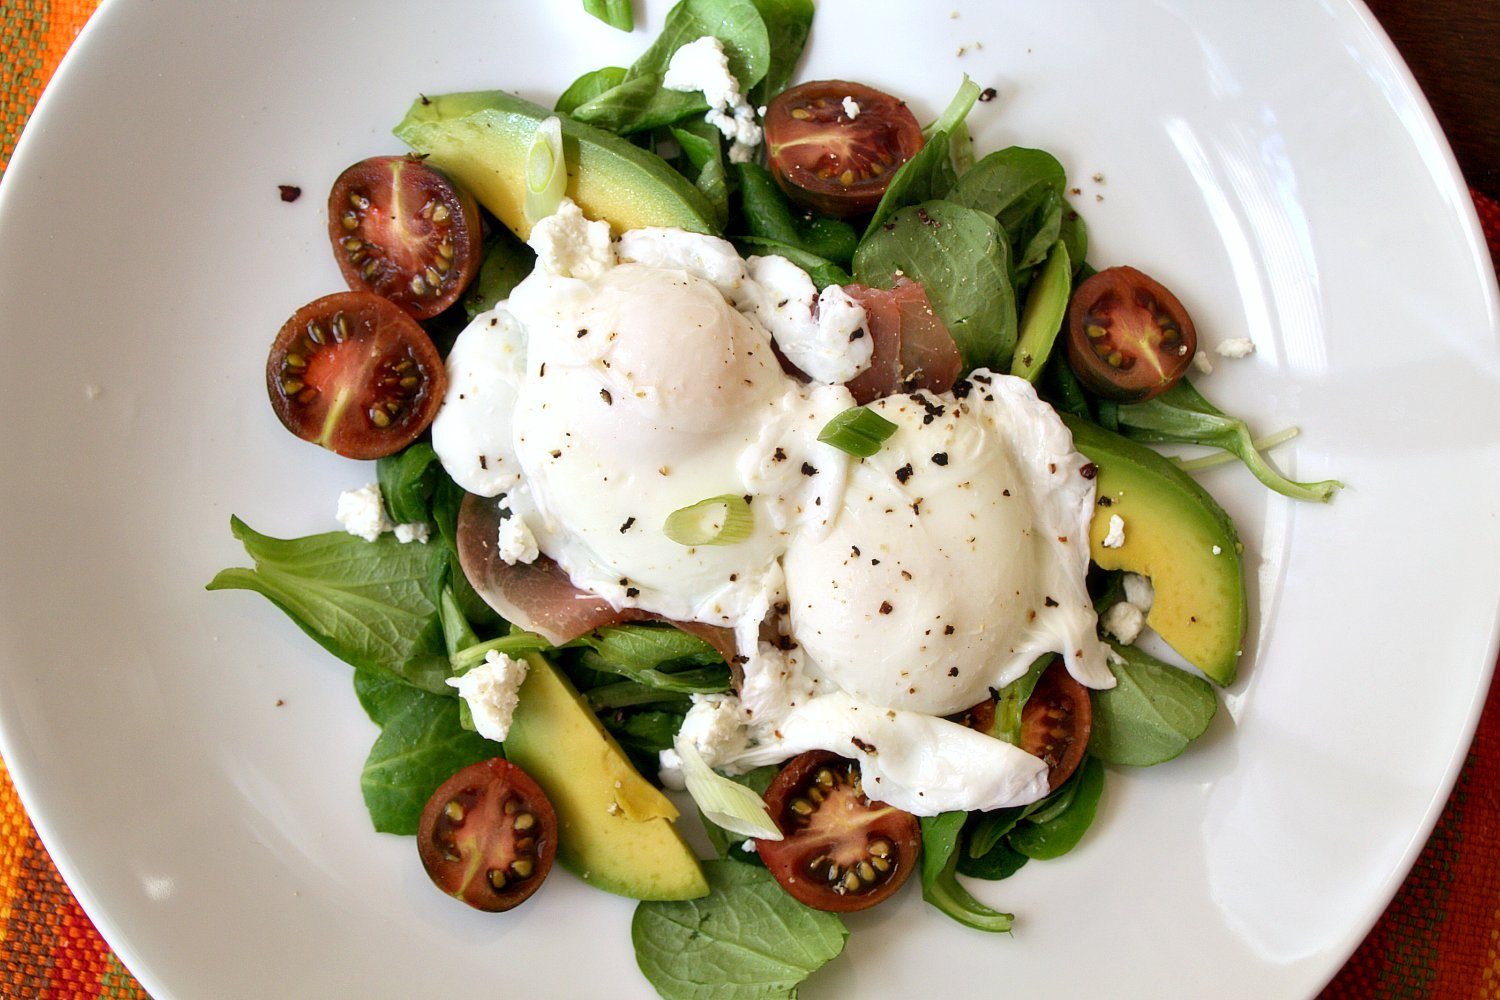 Breakfast Salad with Poached Egg and Prosciutto